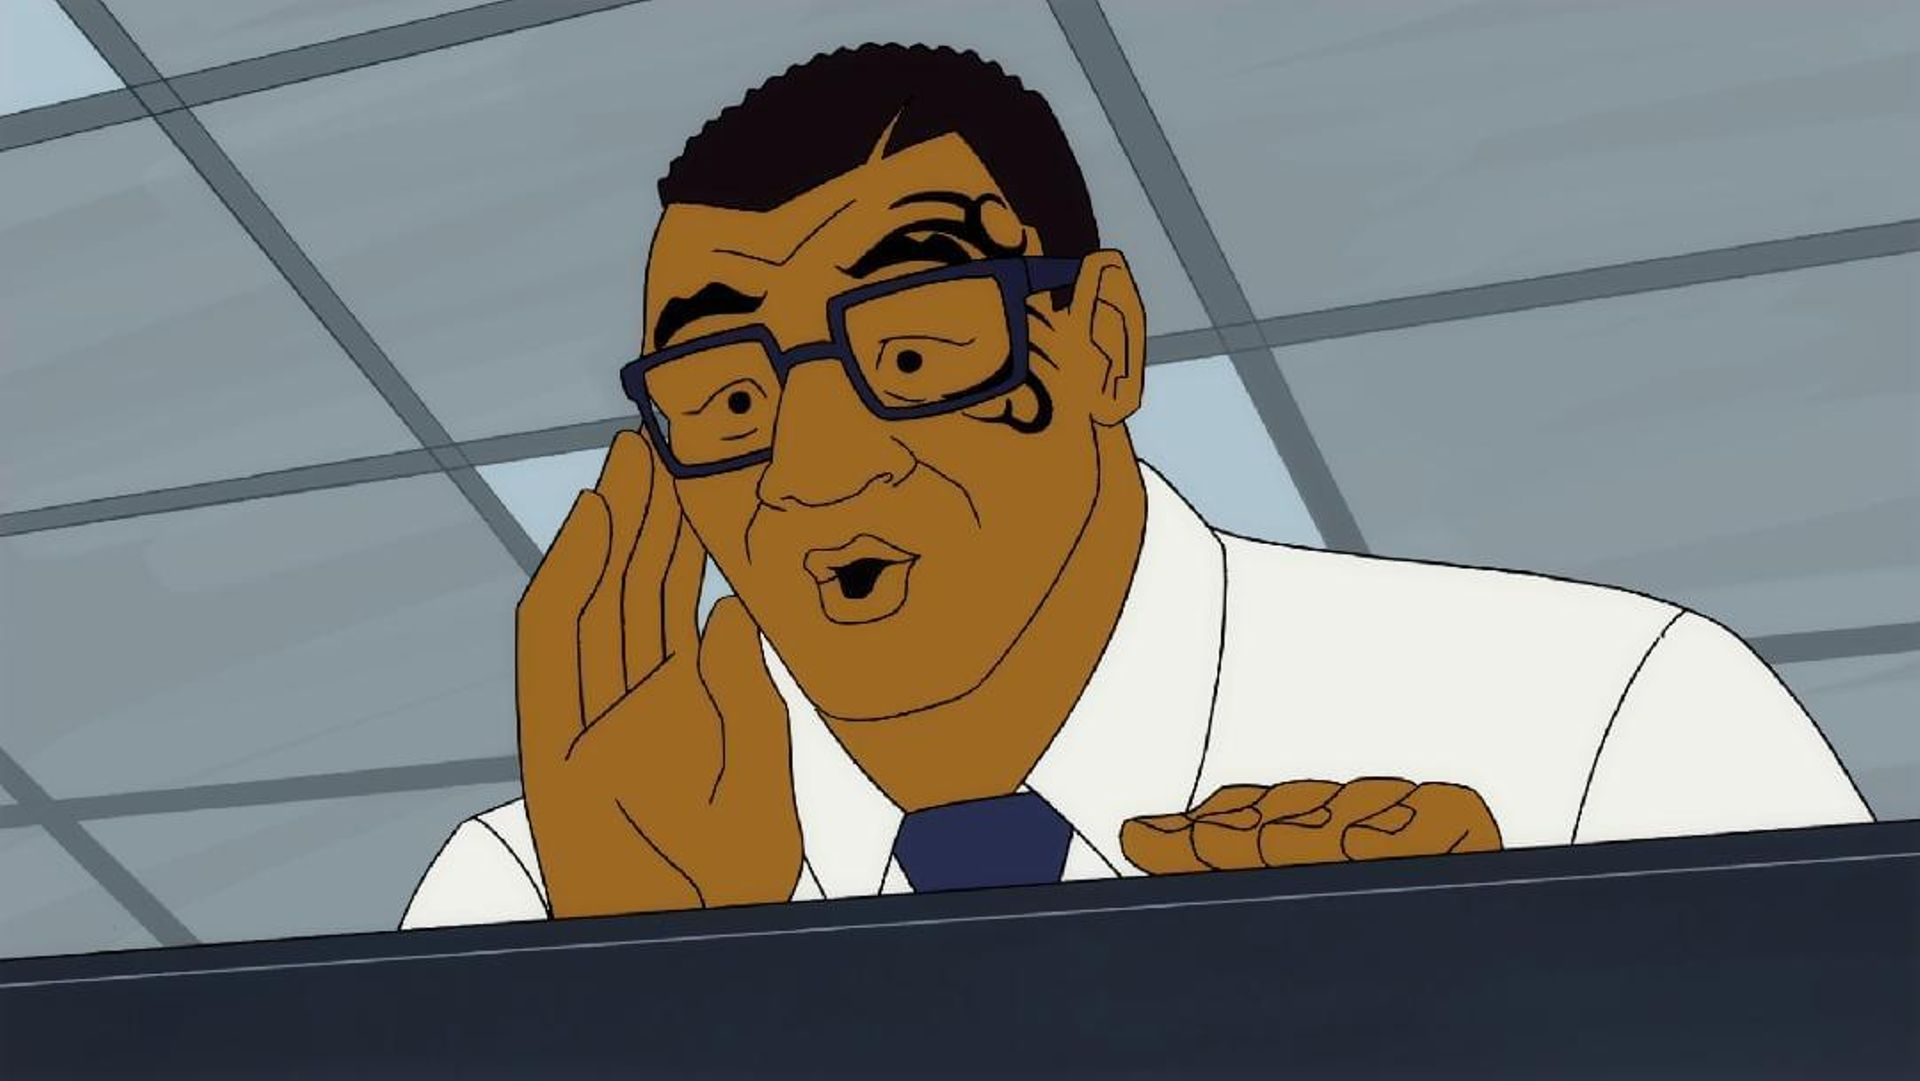 Mike Tyson Mysteries - International Man of Mystery